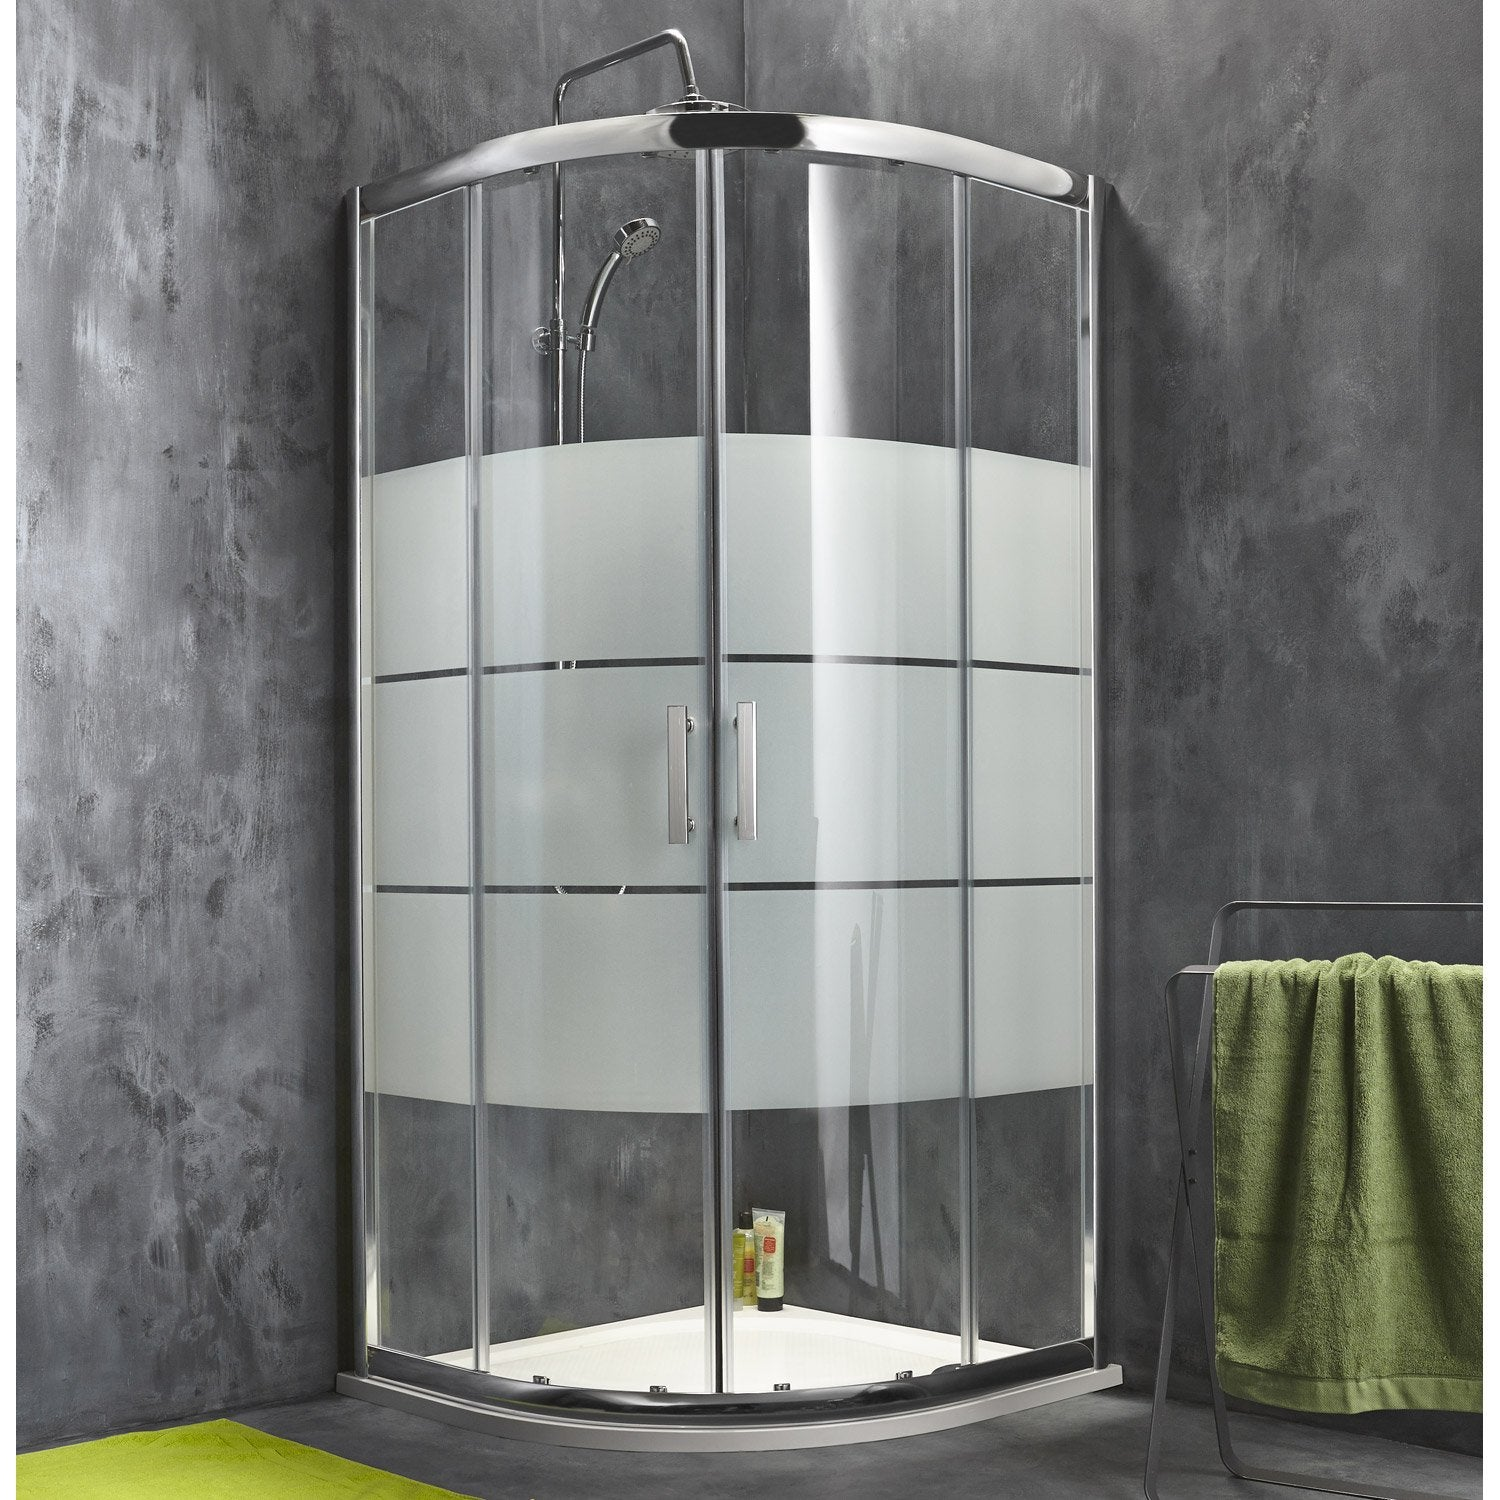 Porte de douche coulissante sensea optima 2 verre for Porte verre douche